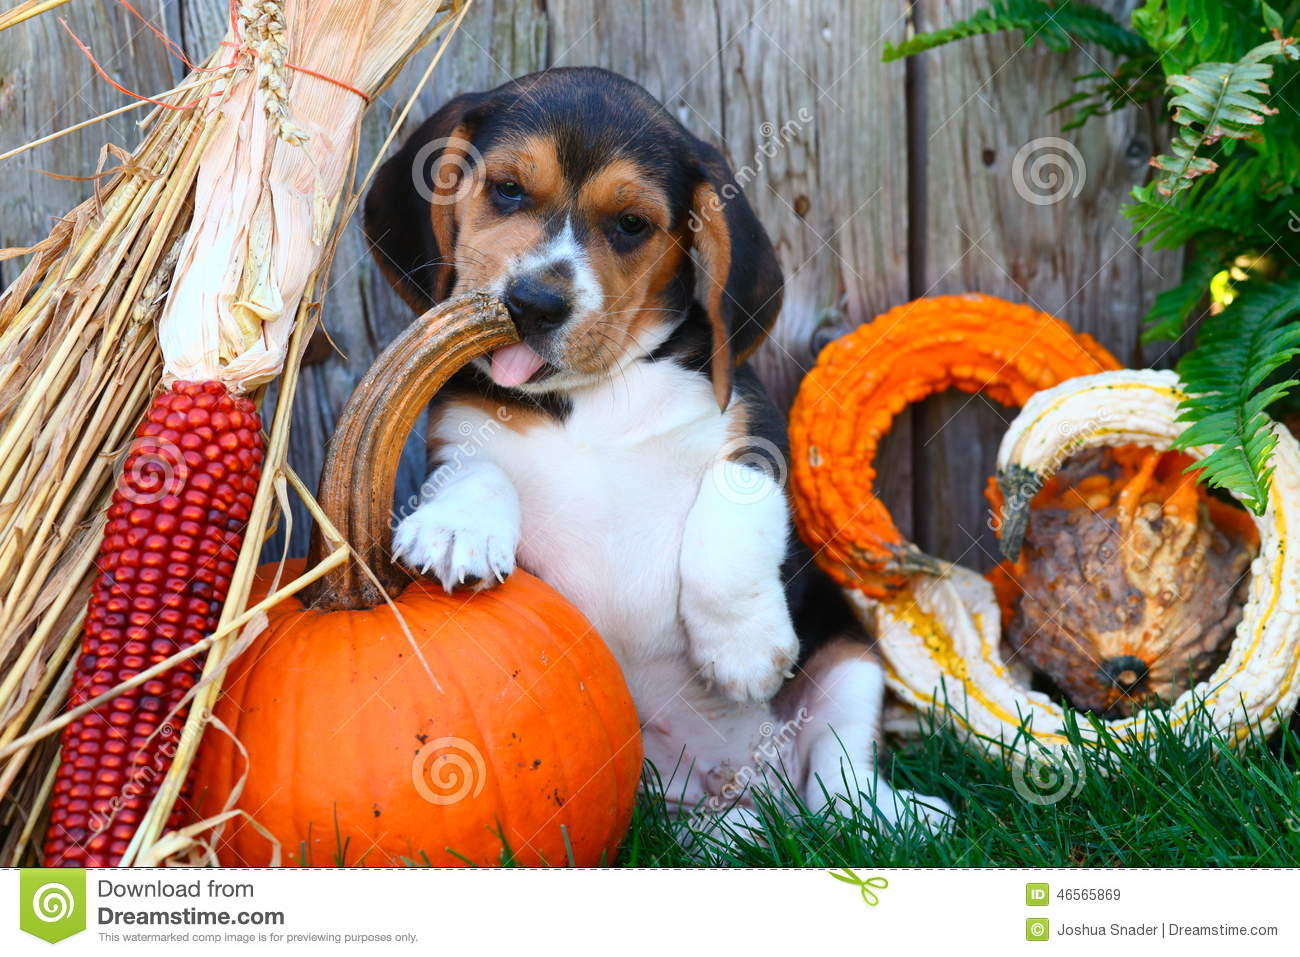 Free Fall Halloween Wallpaper Beagle Puppy Sitting With A Pumpkin Gourds And Other